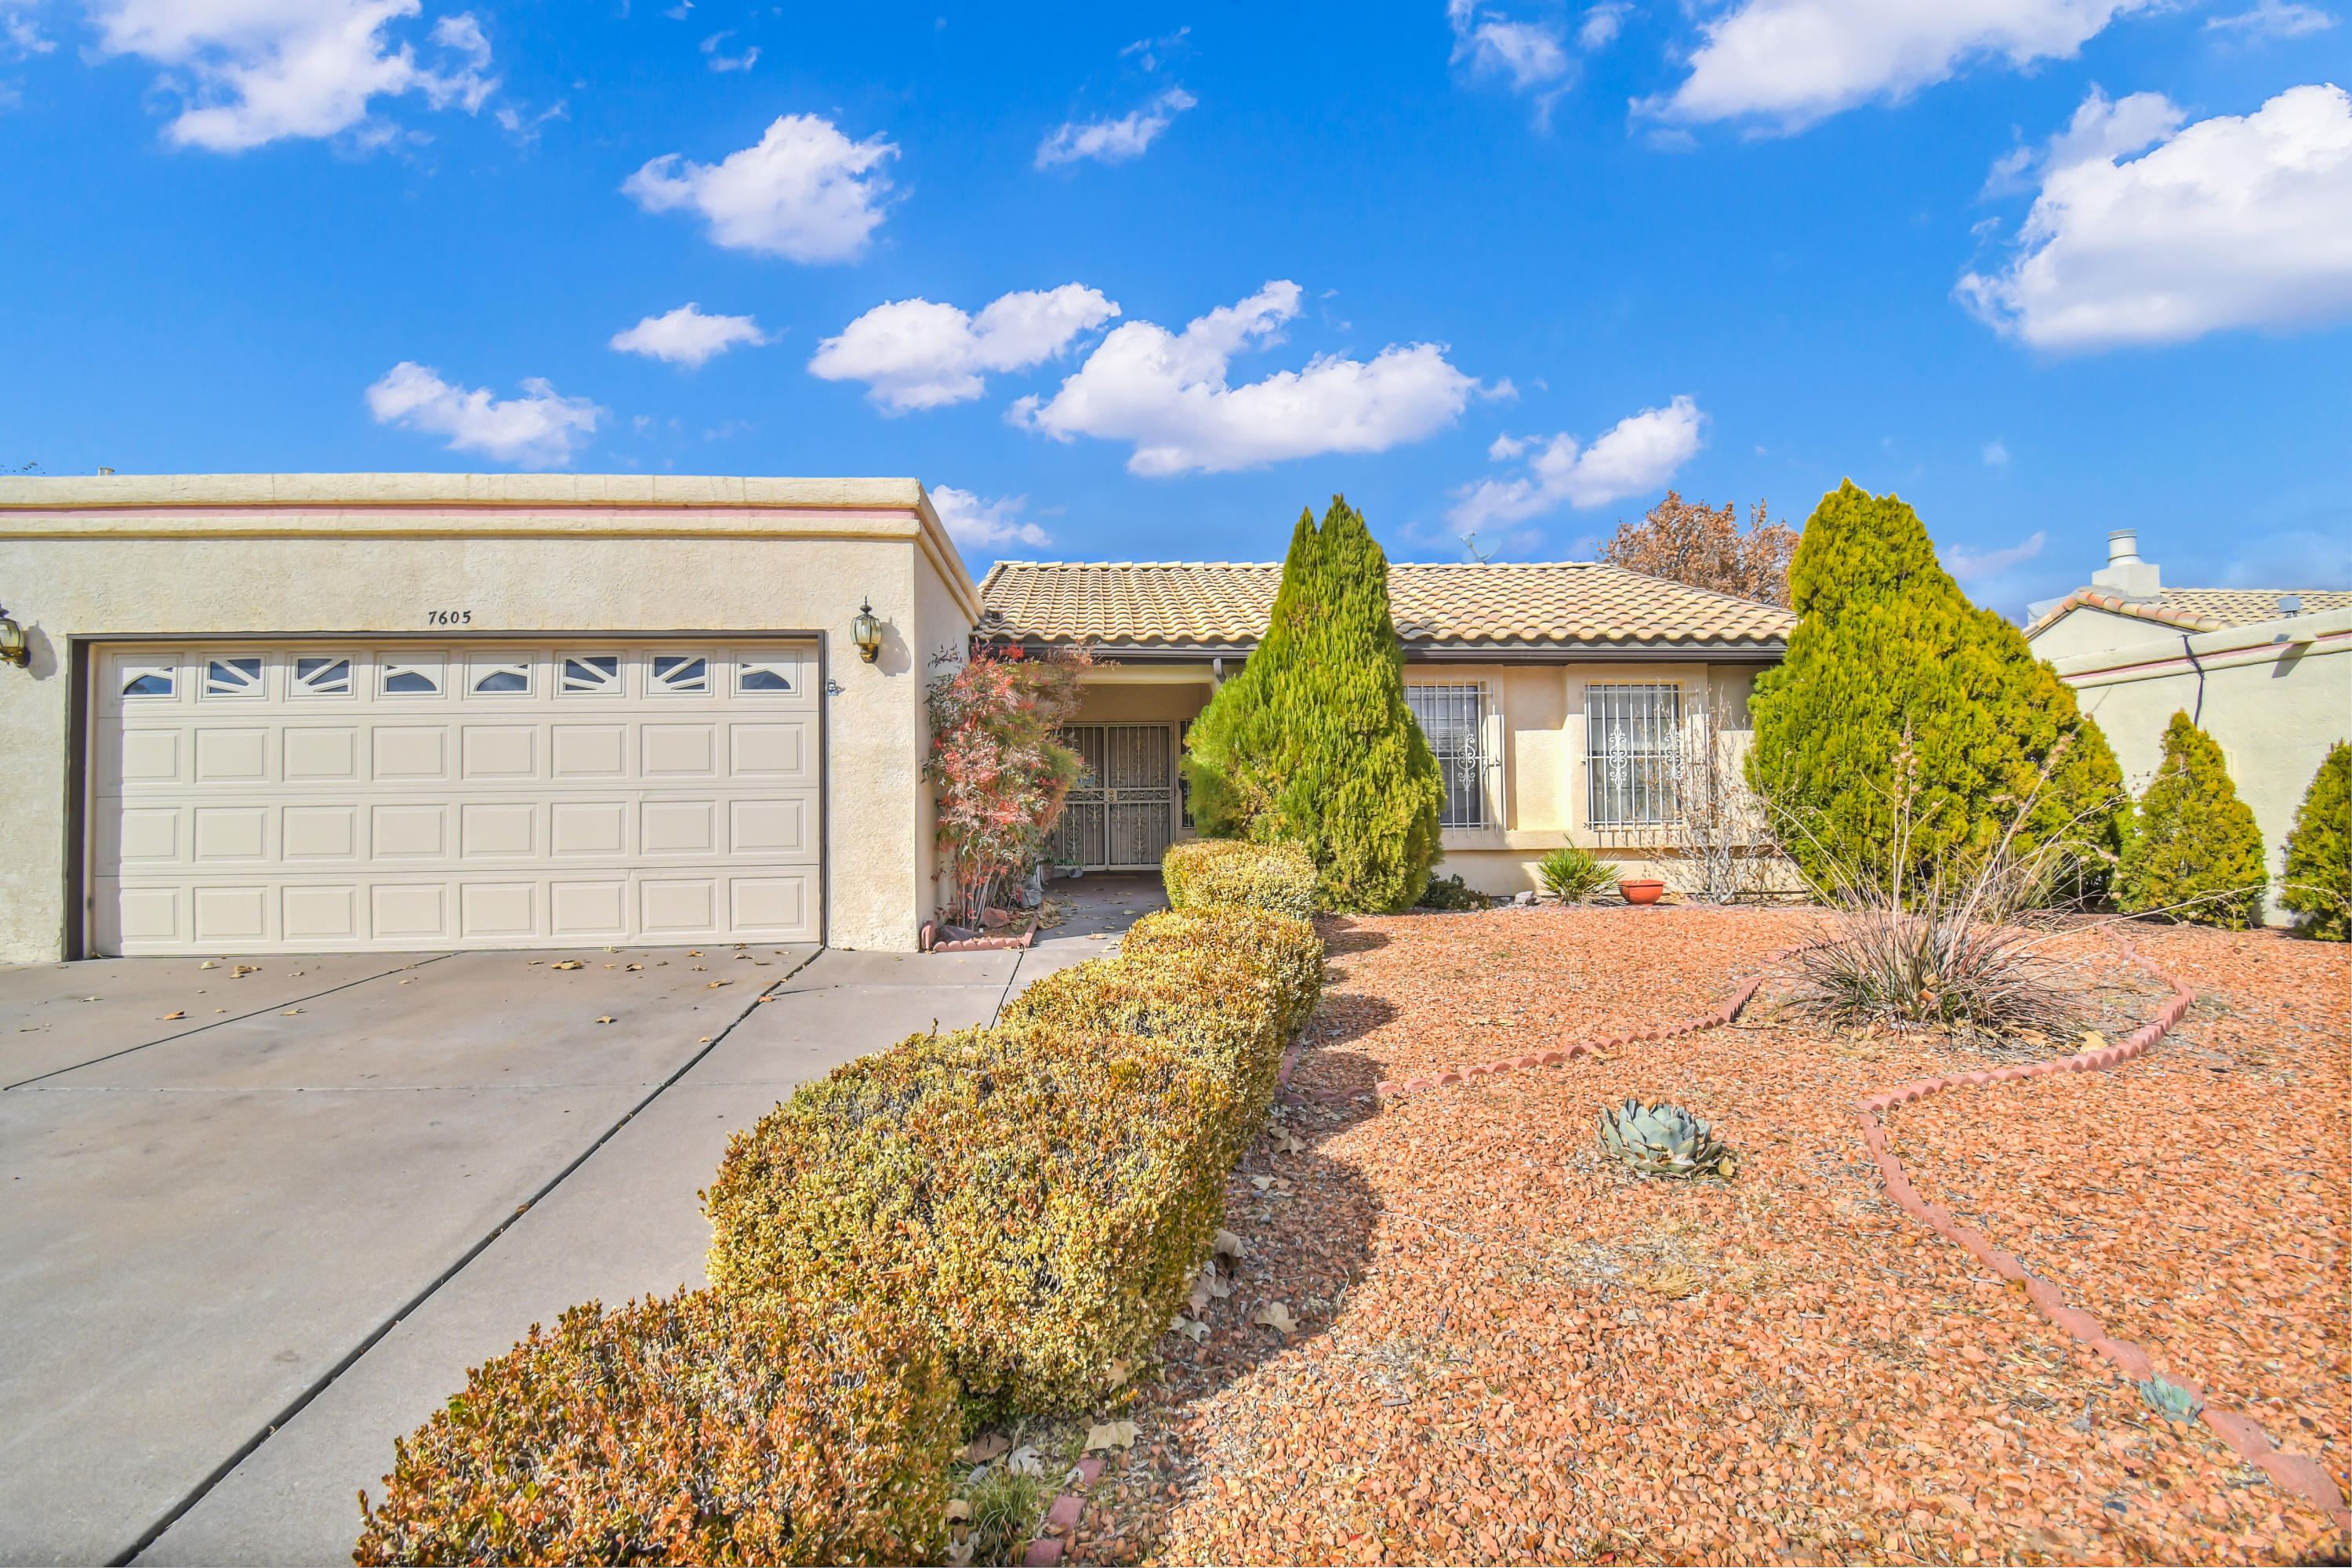 Beautiful Wood Brothers home in desirable Laurelwood subdivision.  Refrigerated air keeps the house cool all summer.  Newer roof and furnace are 5 years old.  Tankless water heater saves you money.  Granite countertops in the kitchen.  5/8'' Brazilian Oak Wood floors throughout the home.  Covered patio with grass landscaping is perfect for those outdoor BBQ's.  This won't last long.